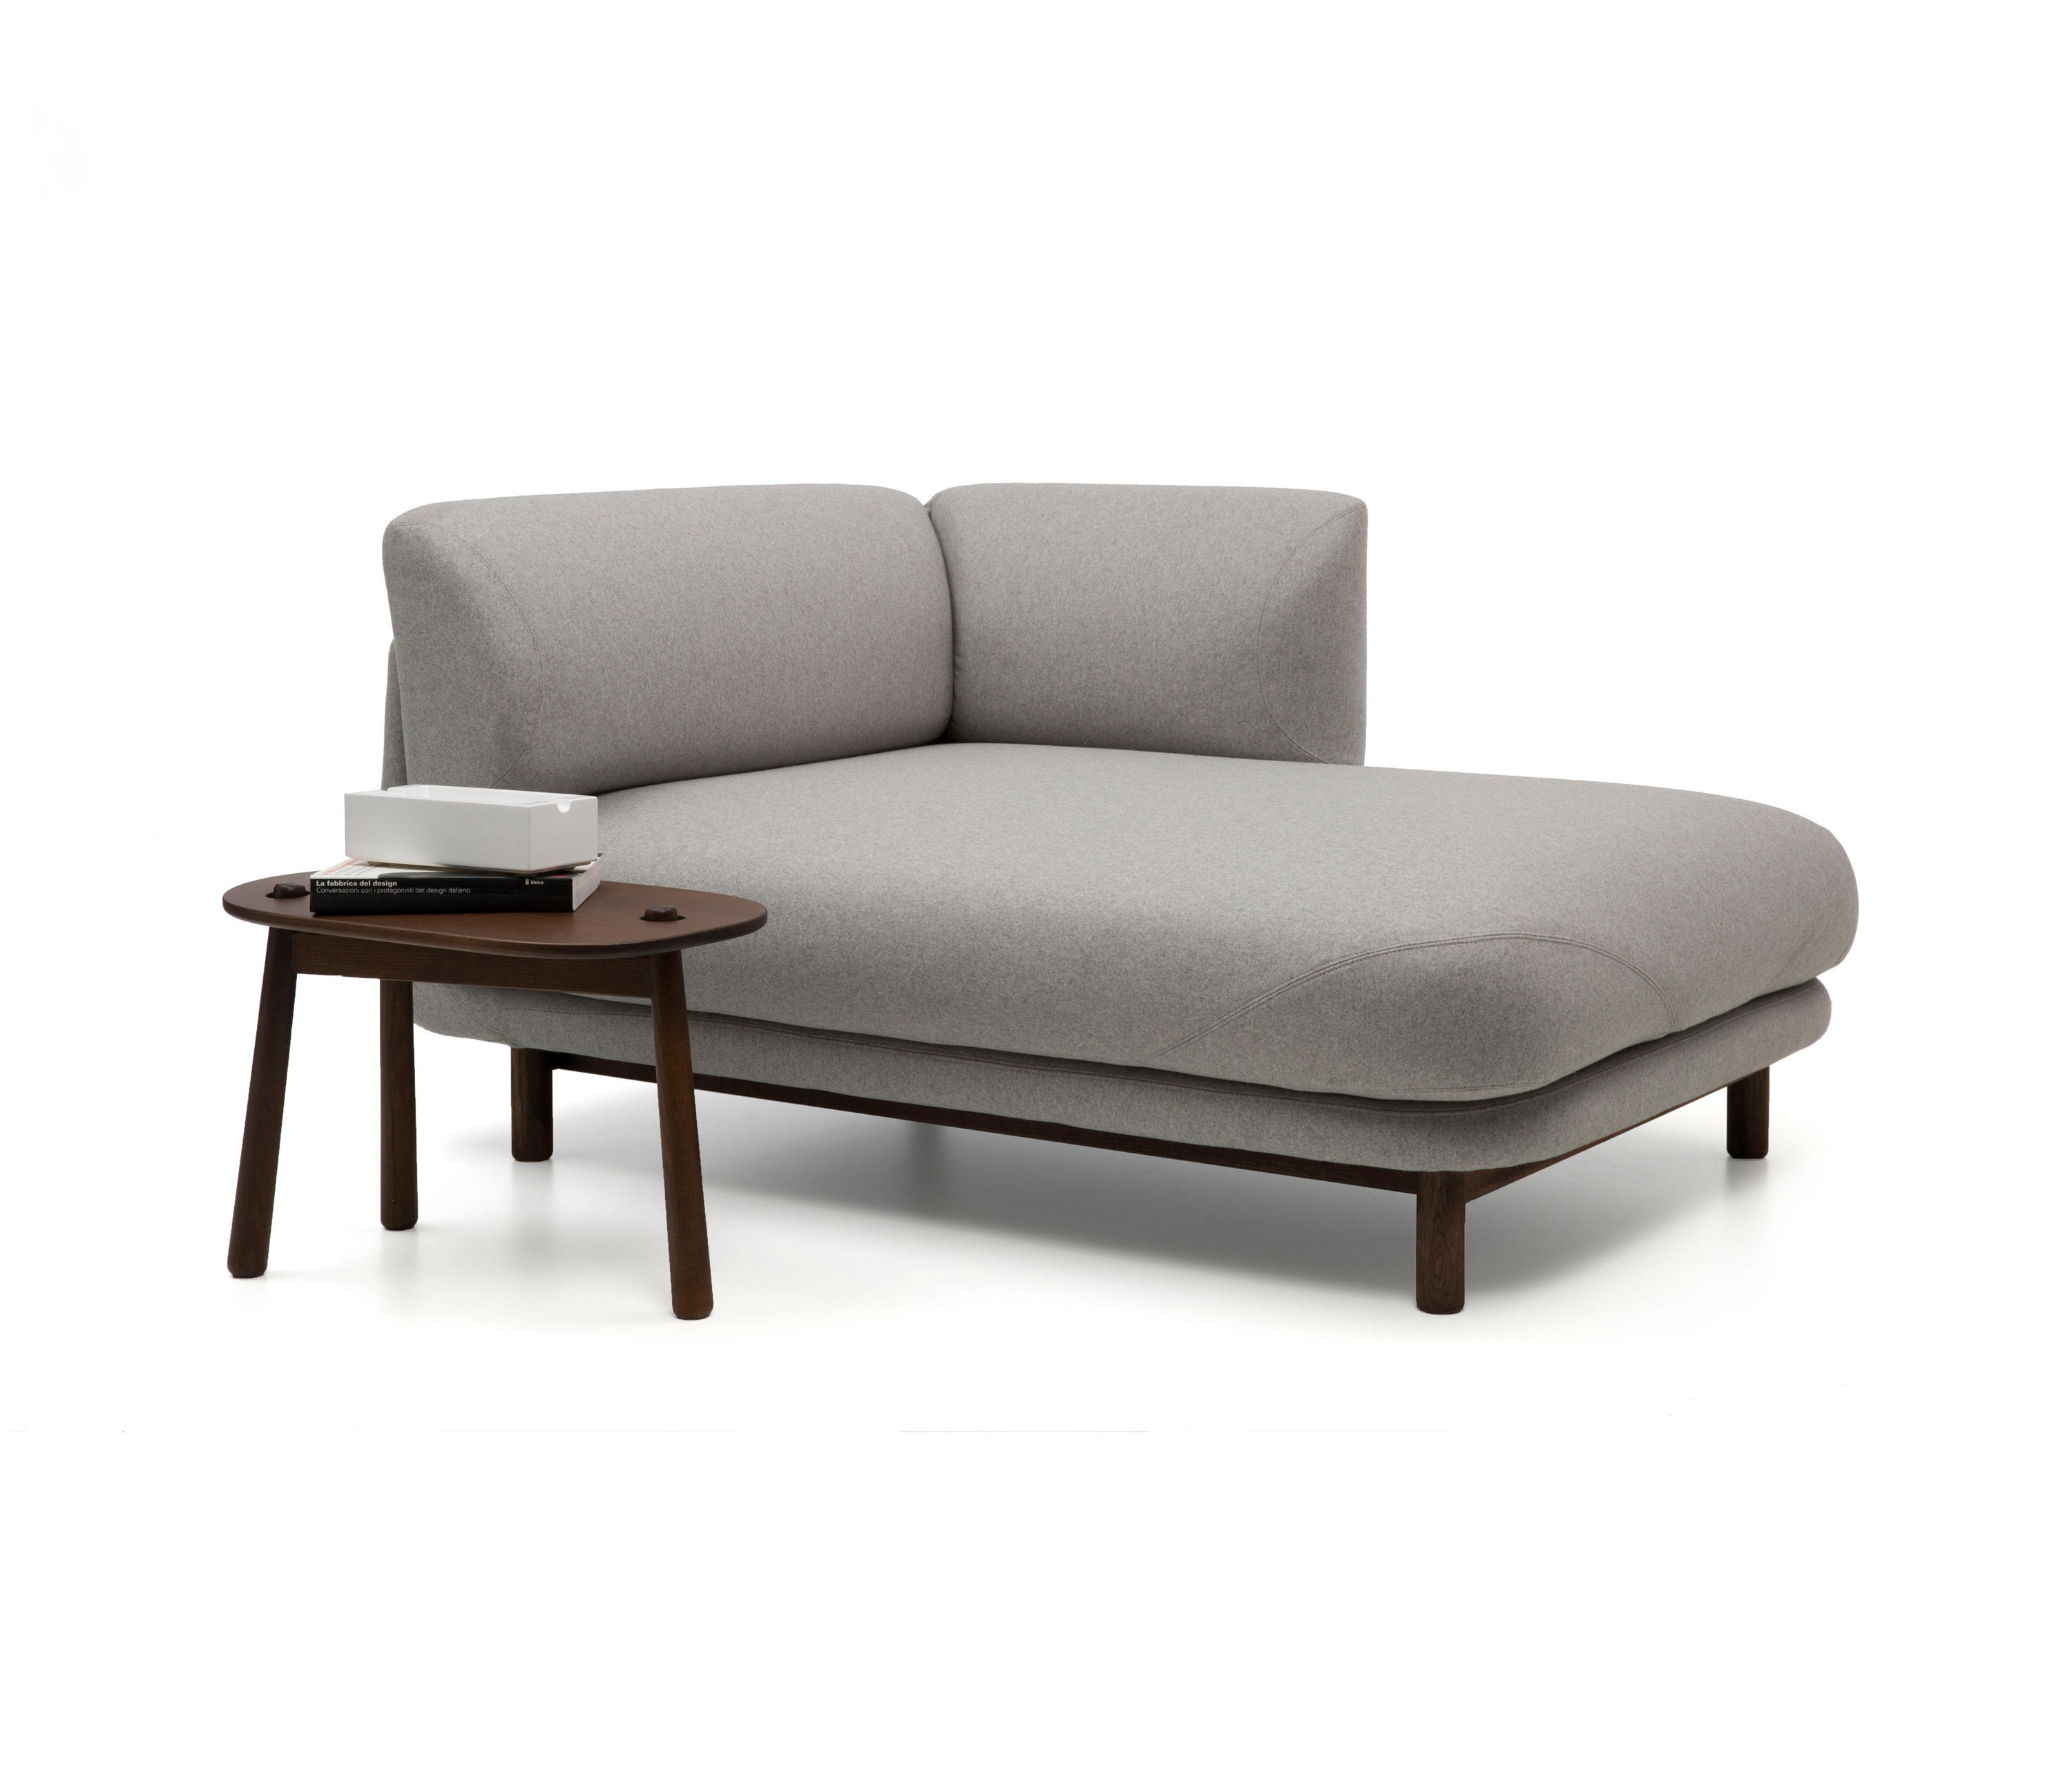 Peg chaise longue chaise longues from cappellini for Chaise longue manufacturers